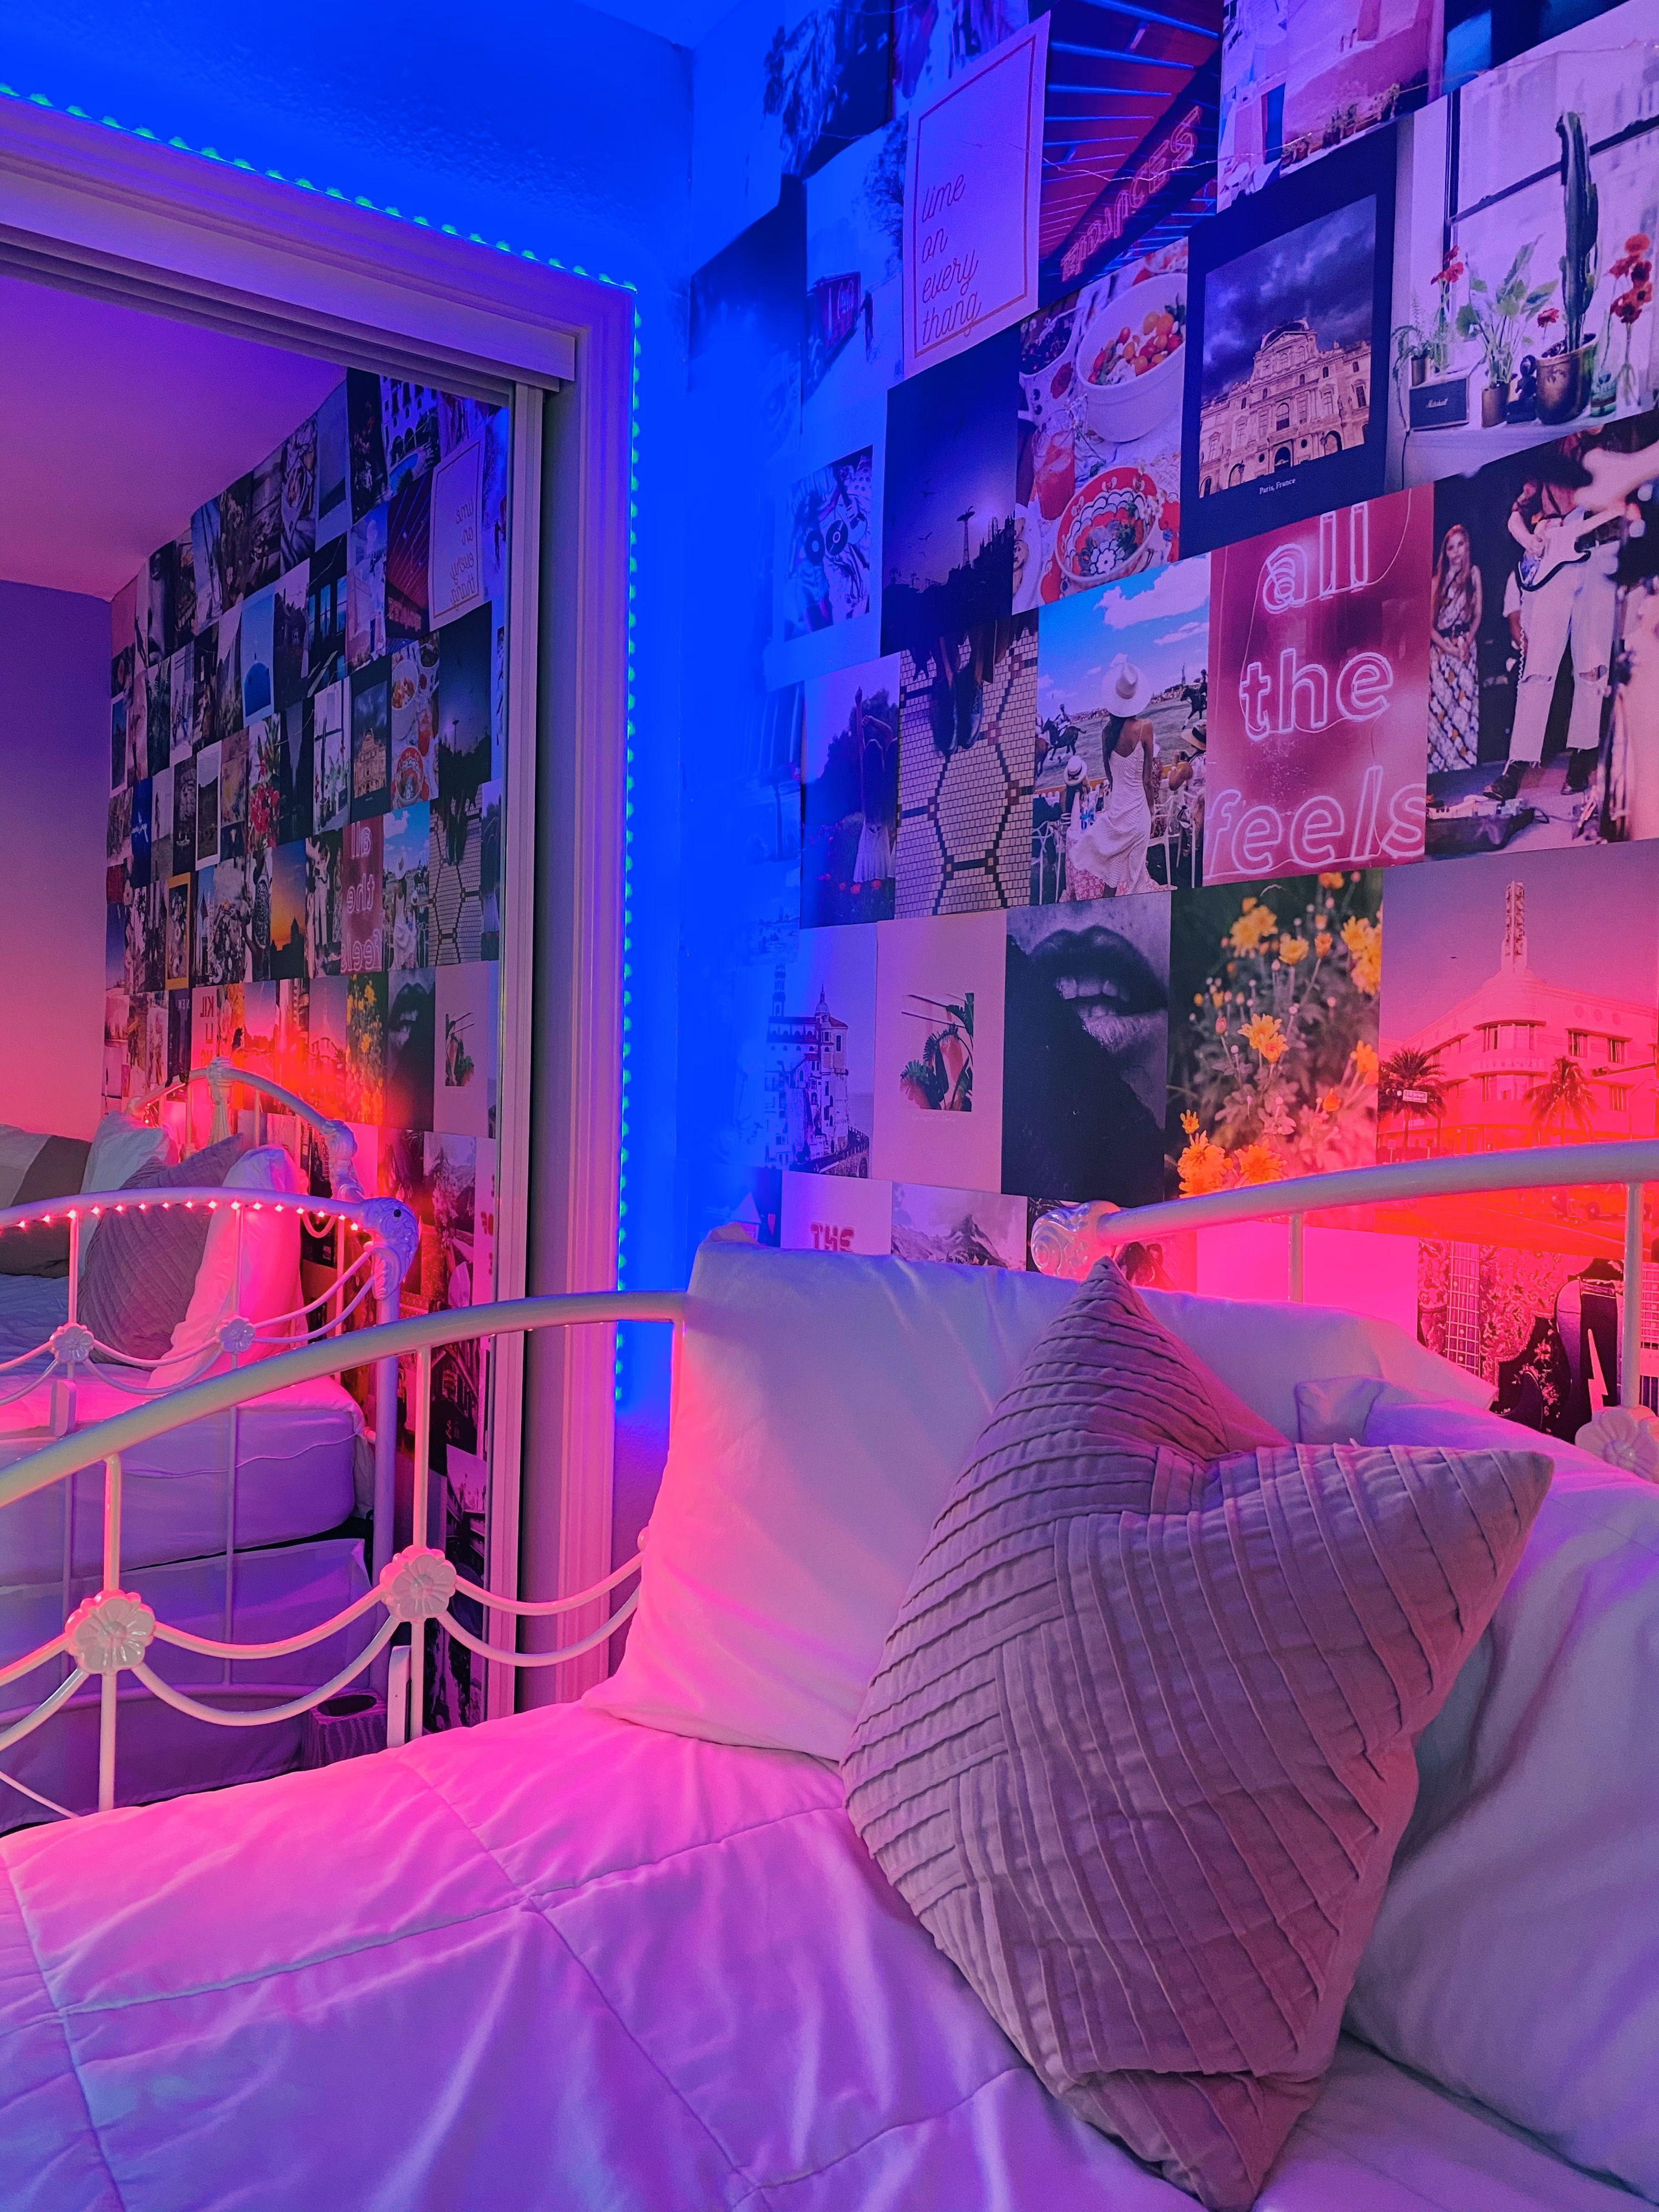 Pin by Clea SONNET on room decor in 11  Dreamy room, Indie room